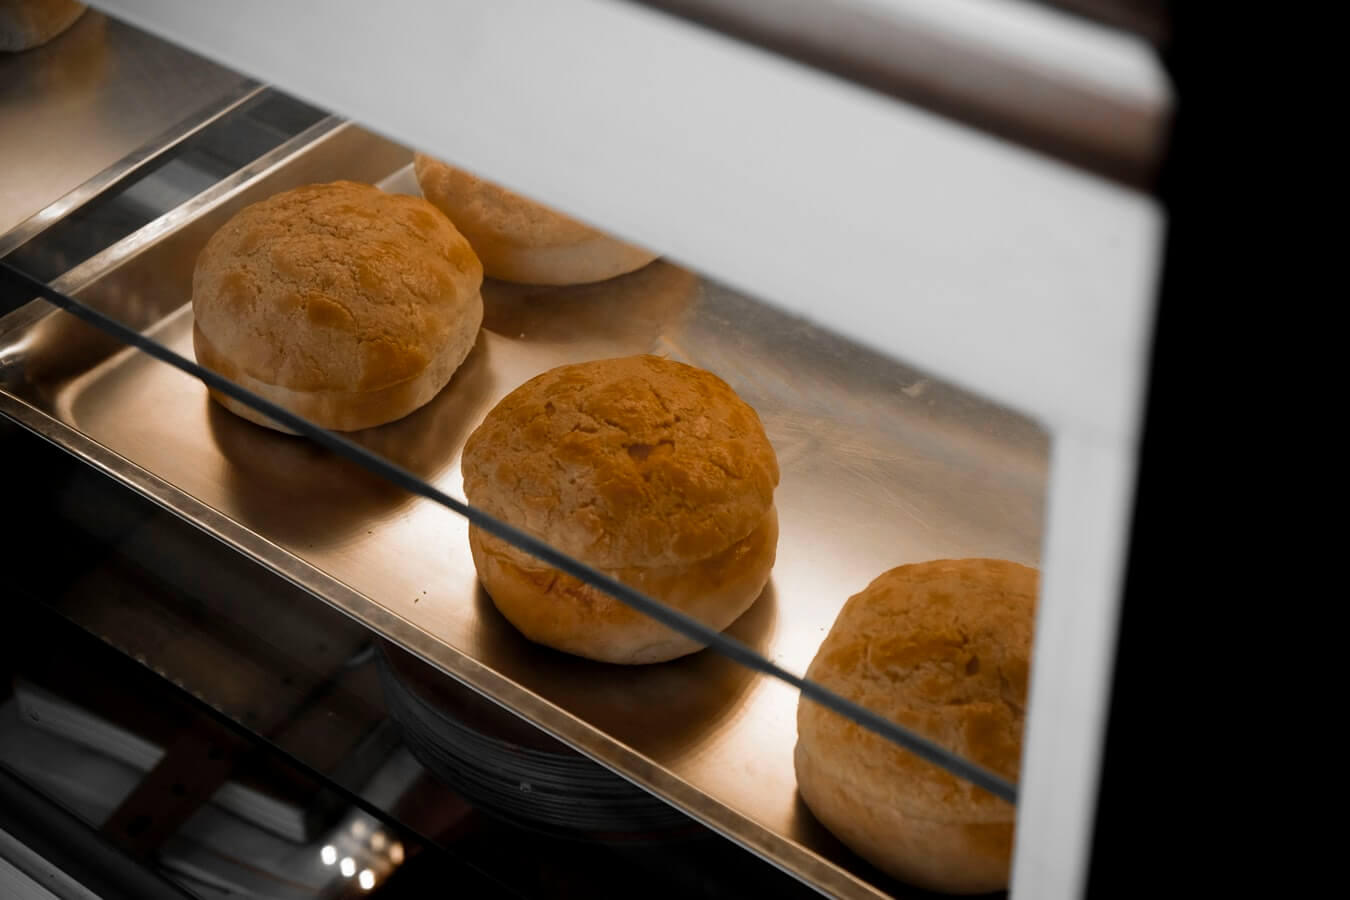 biscuits baking in the oven. Baking is a great fall activitiy for seniors to engage in